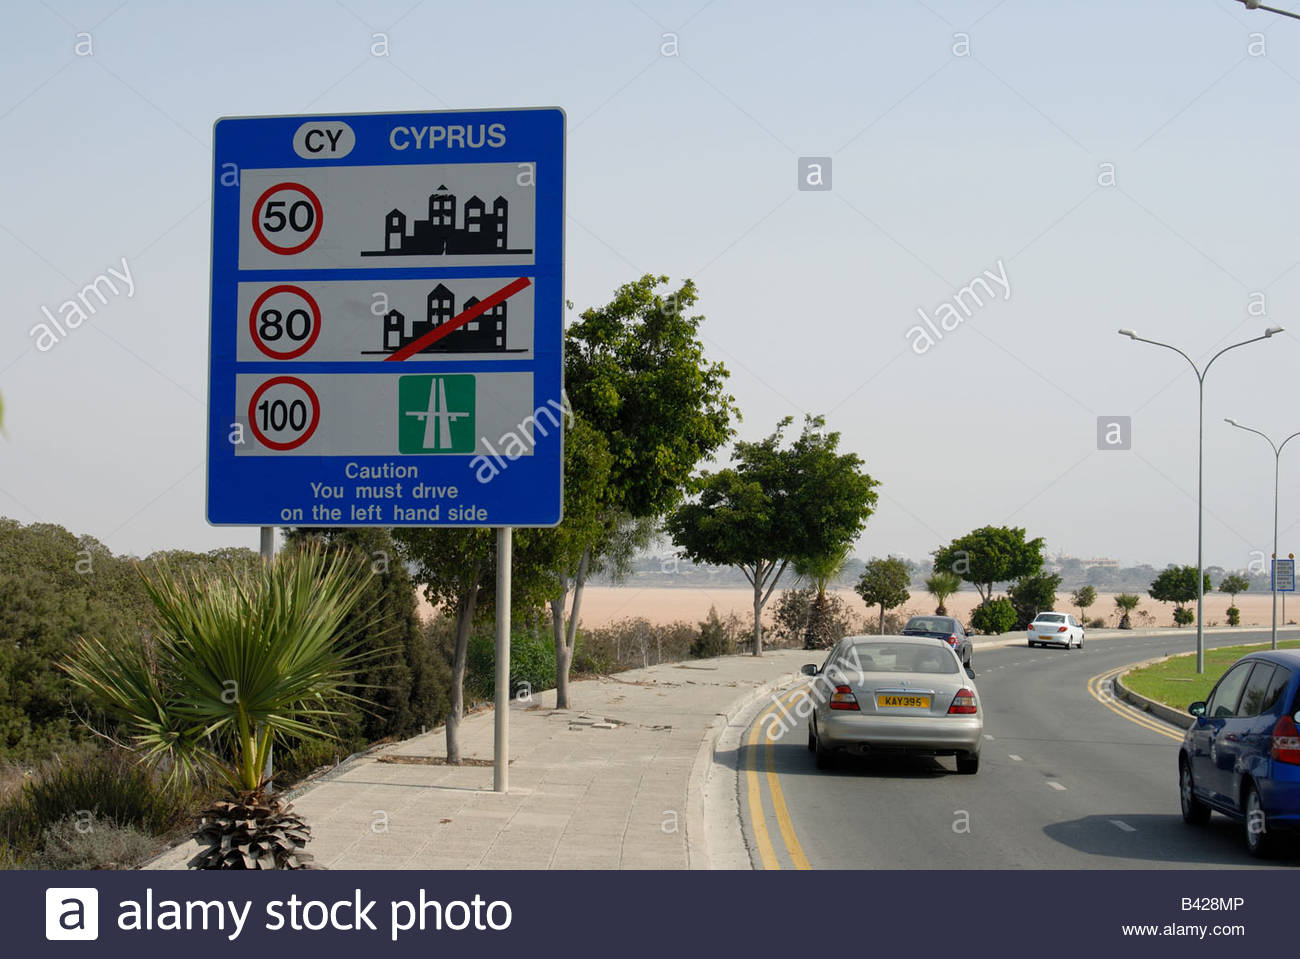 Larnaca Cyprus Roadsign with speed limits and indicating that in Cyprus motorists should drive on the left hand - Stock Image